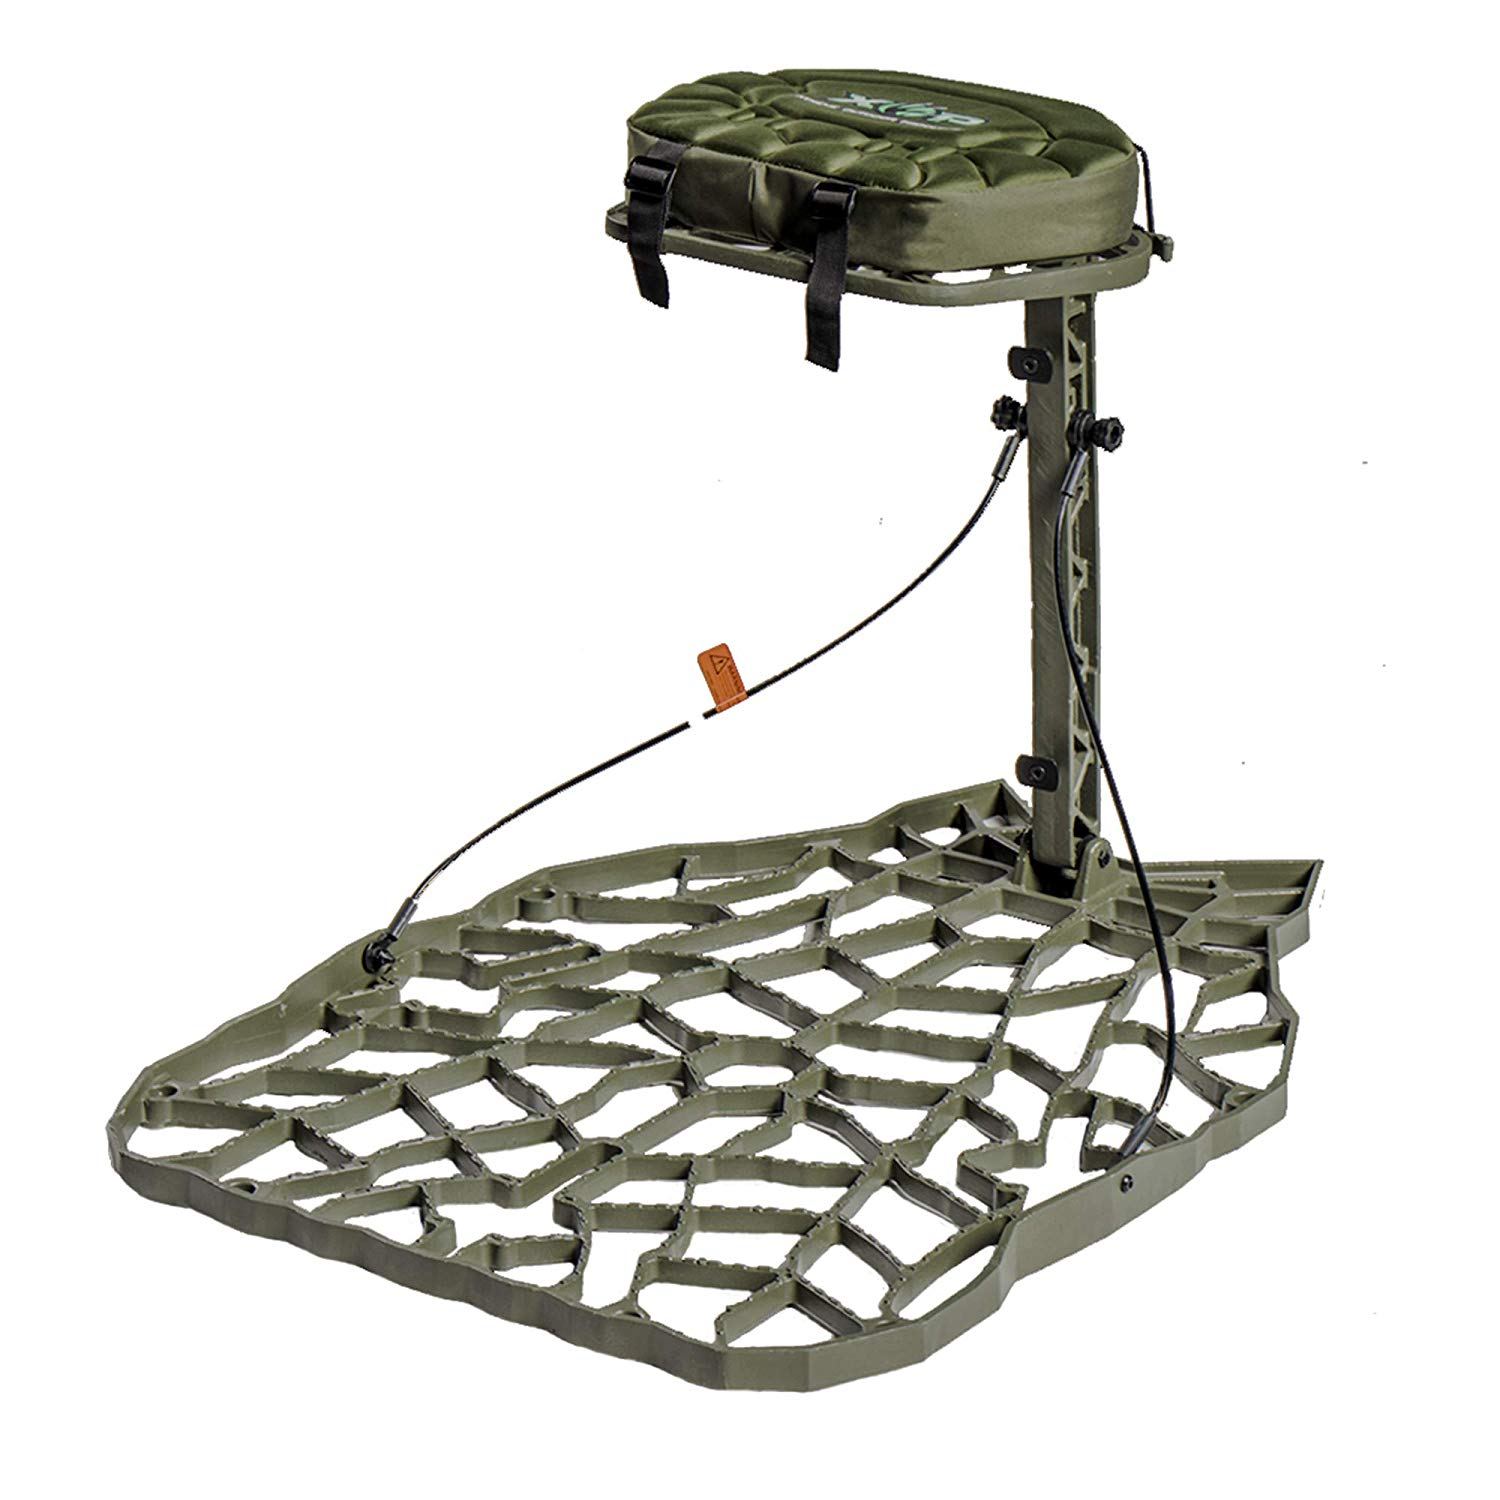 Top 10 Best Climbing Tree Stand 2020 Reviews For The Money 10